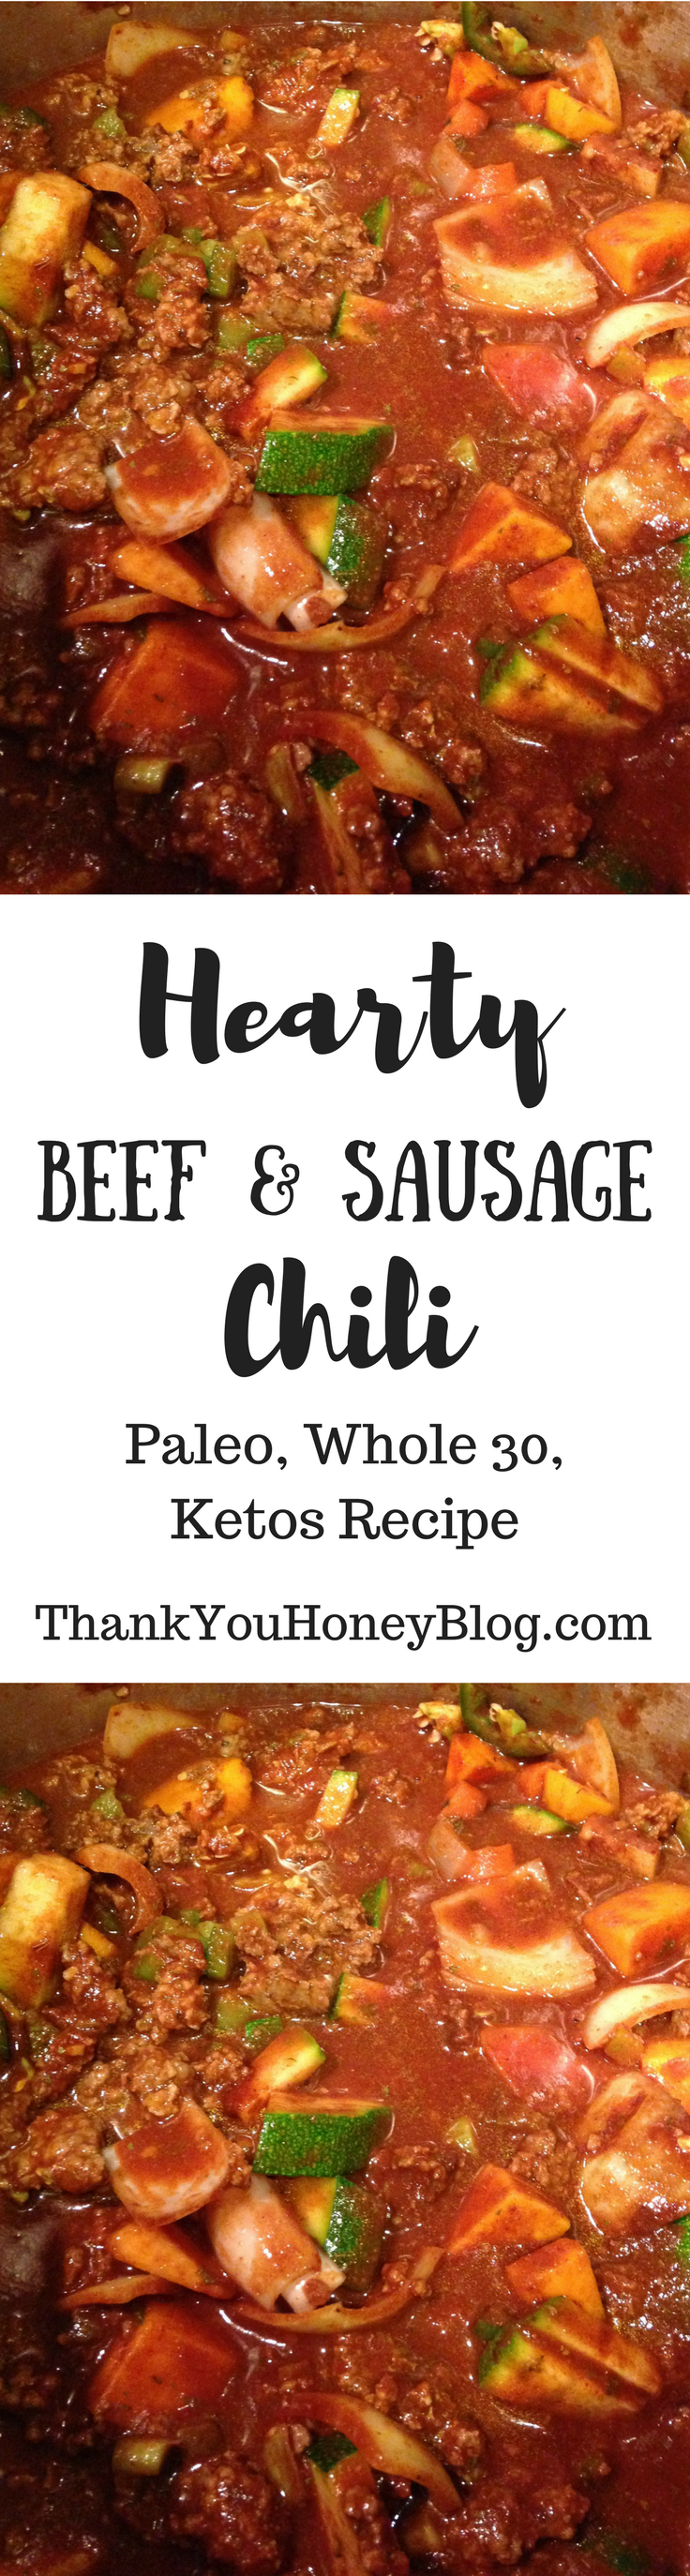 Hearty Beef & Sausage Chili